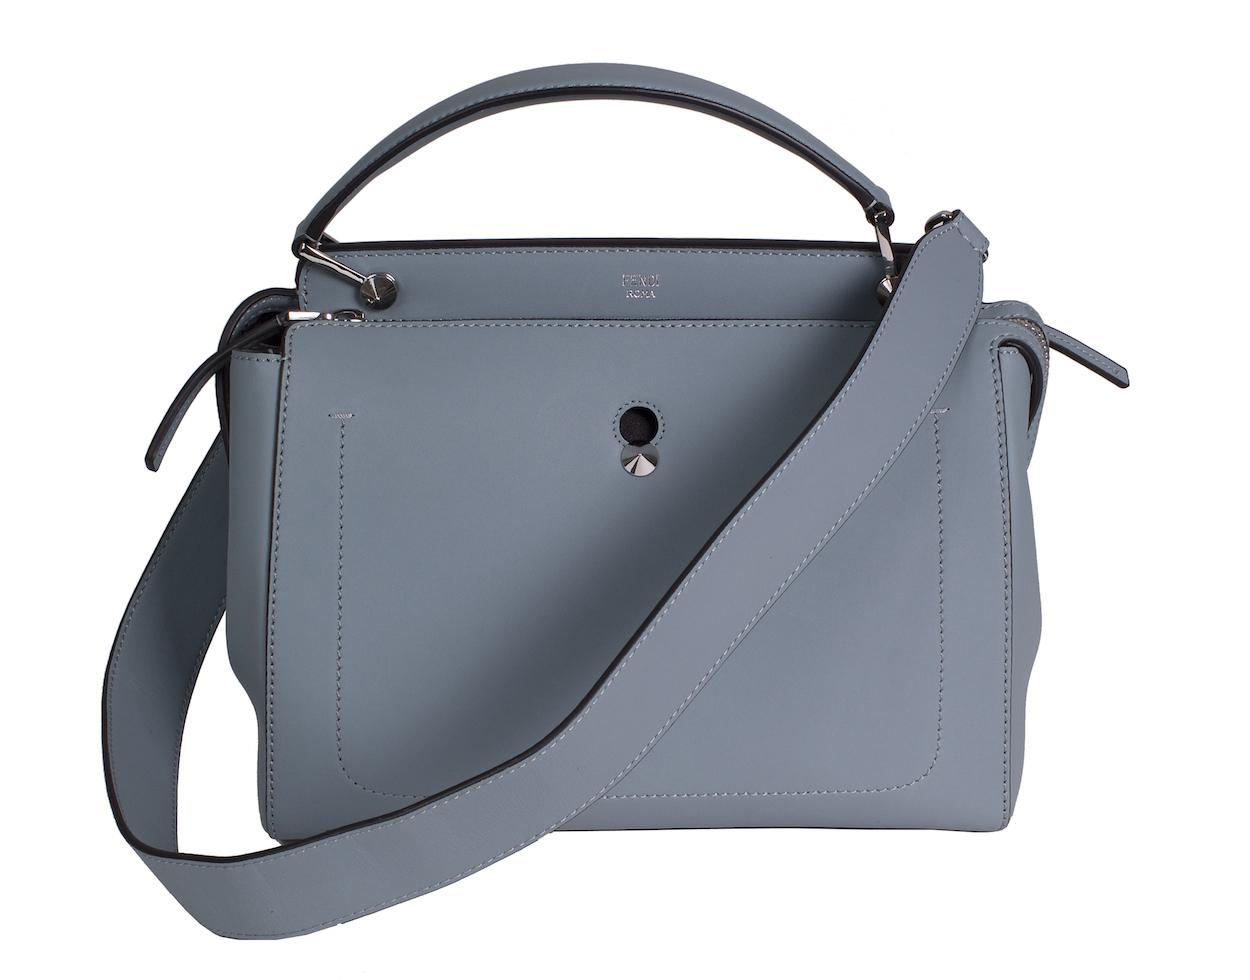 4dba2cbaa5 ... cheapest fendi dotcom blue ss16 shoulder bag c8fda 0e7f6